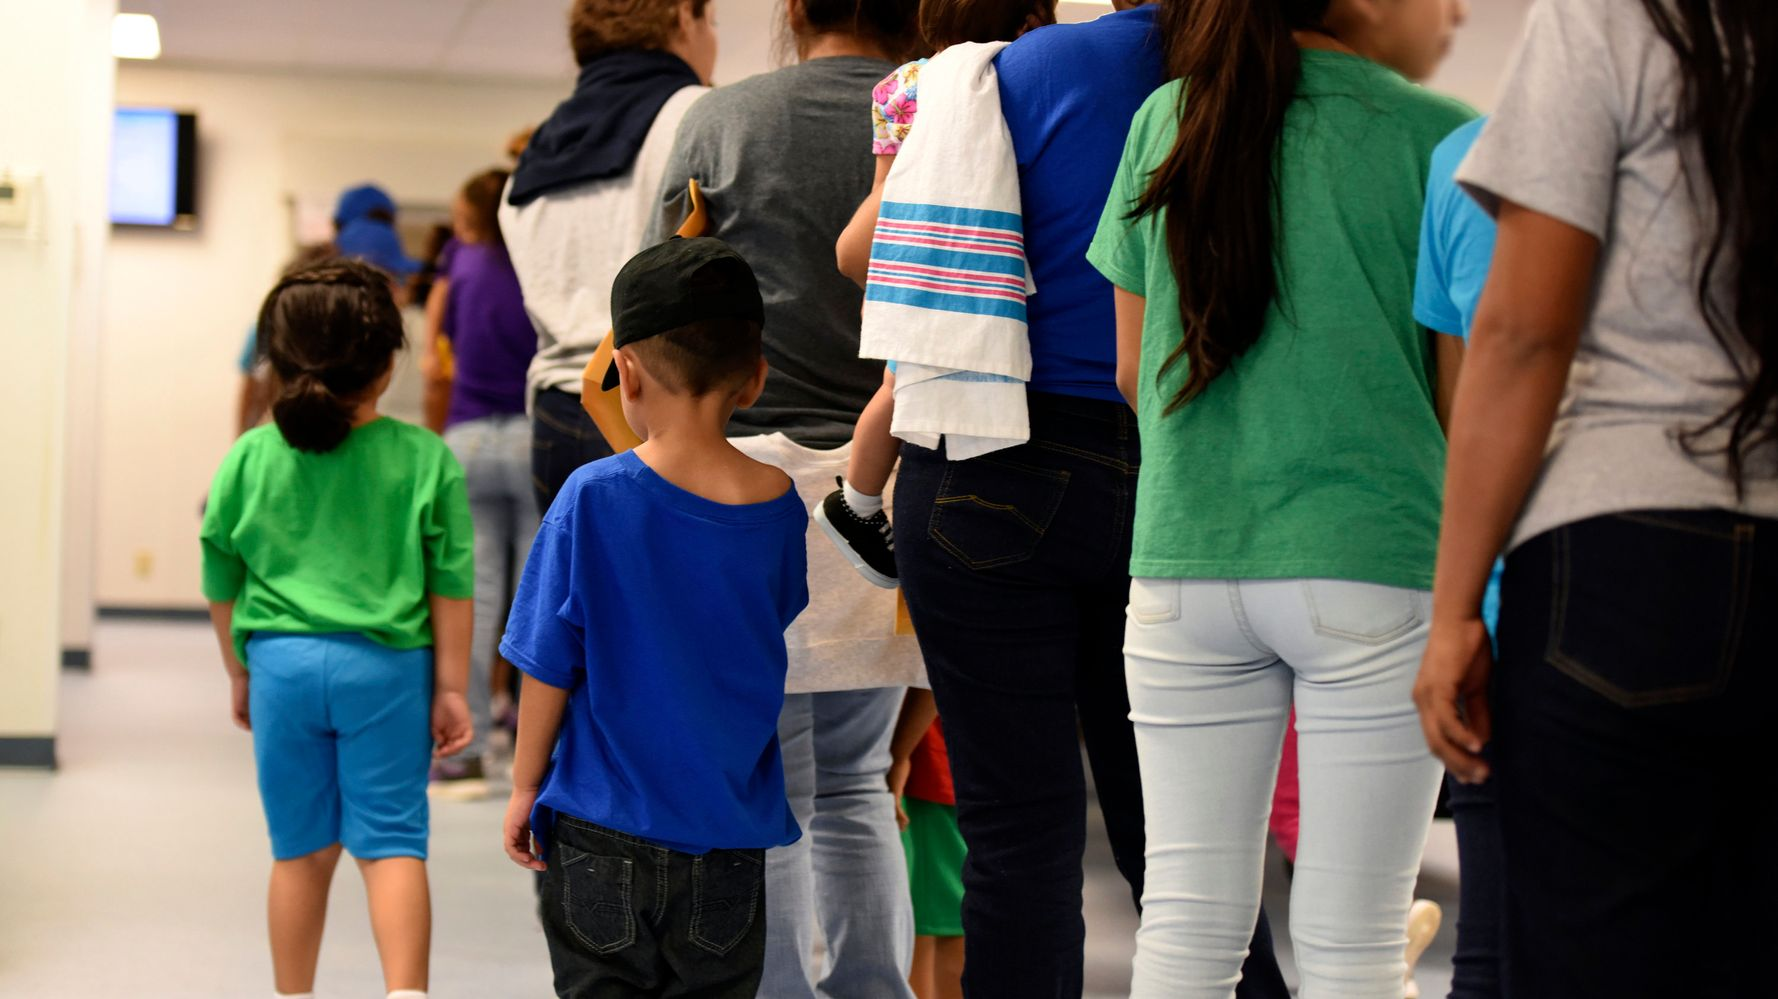 Trump Wants To Detain Migrant Families Indefinitely. He Can't.